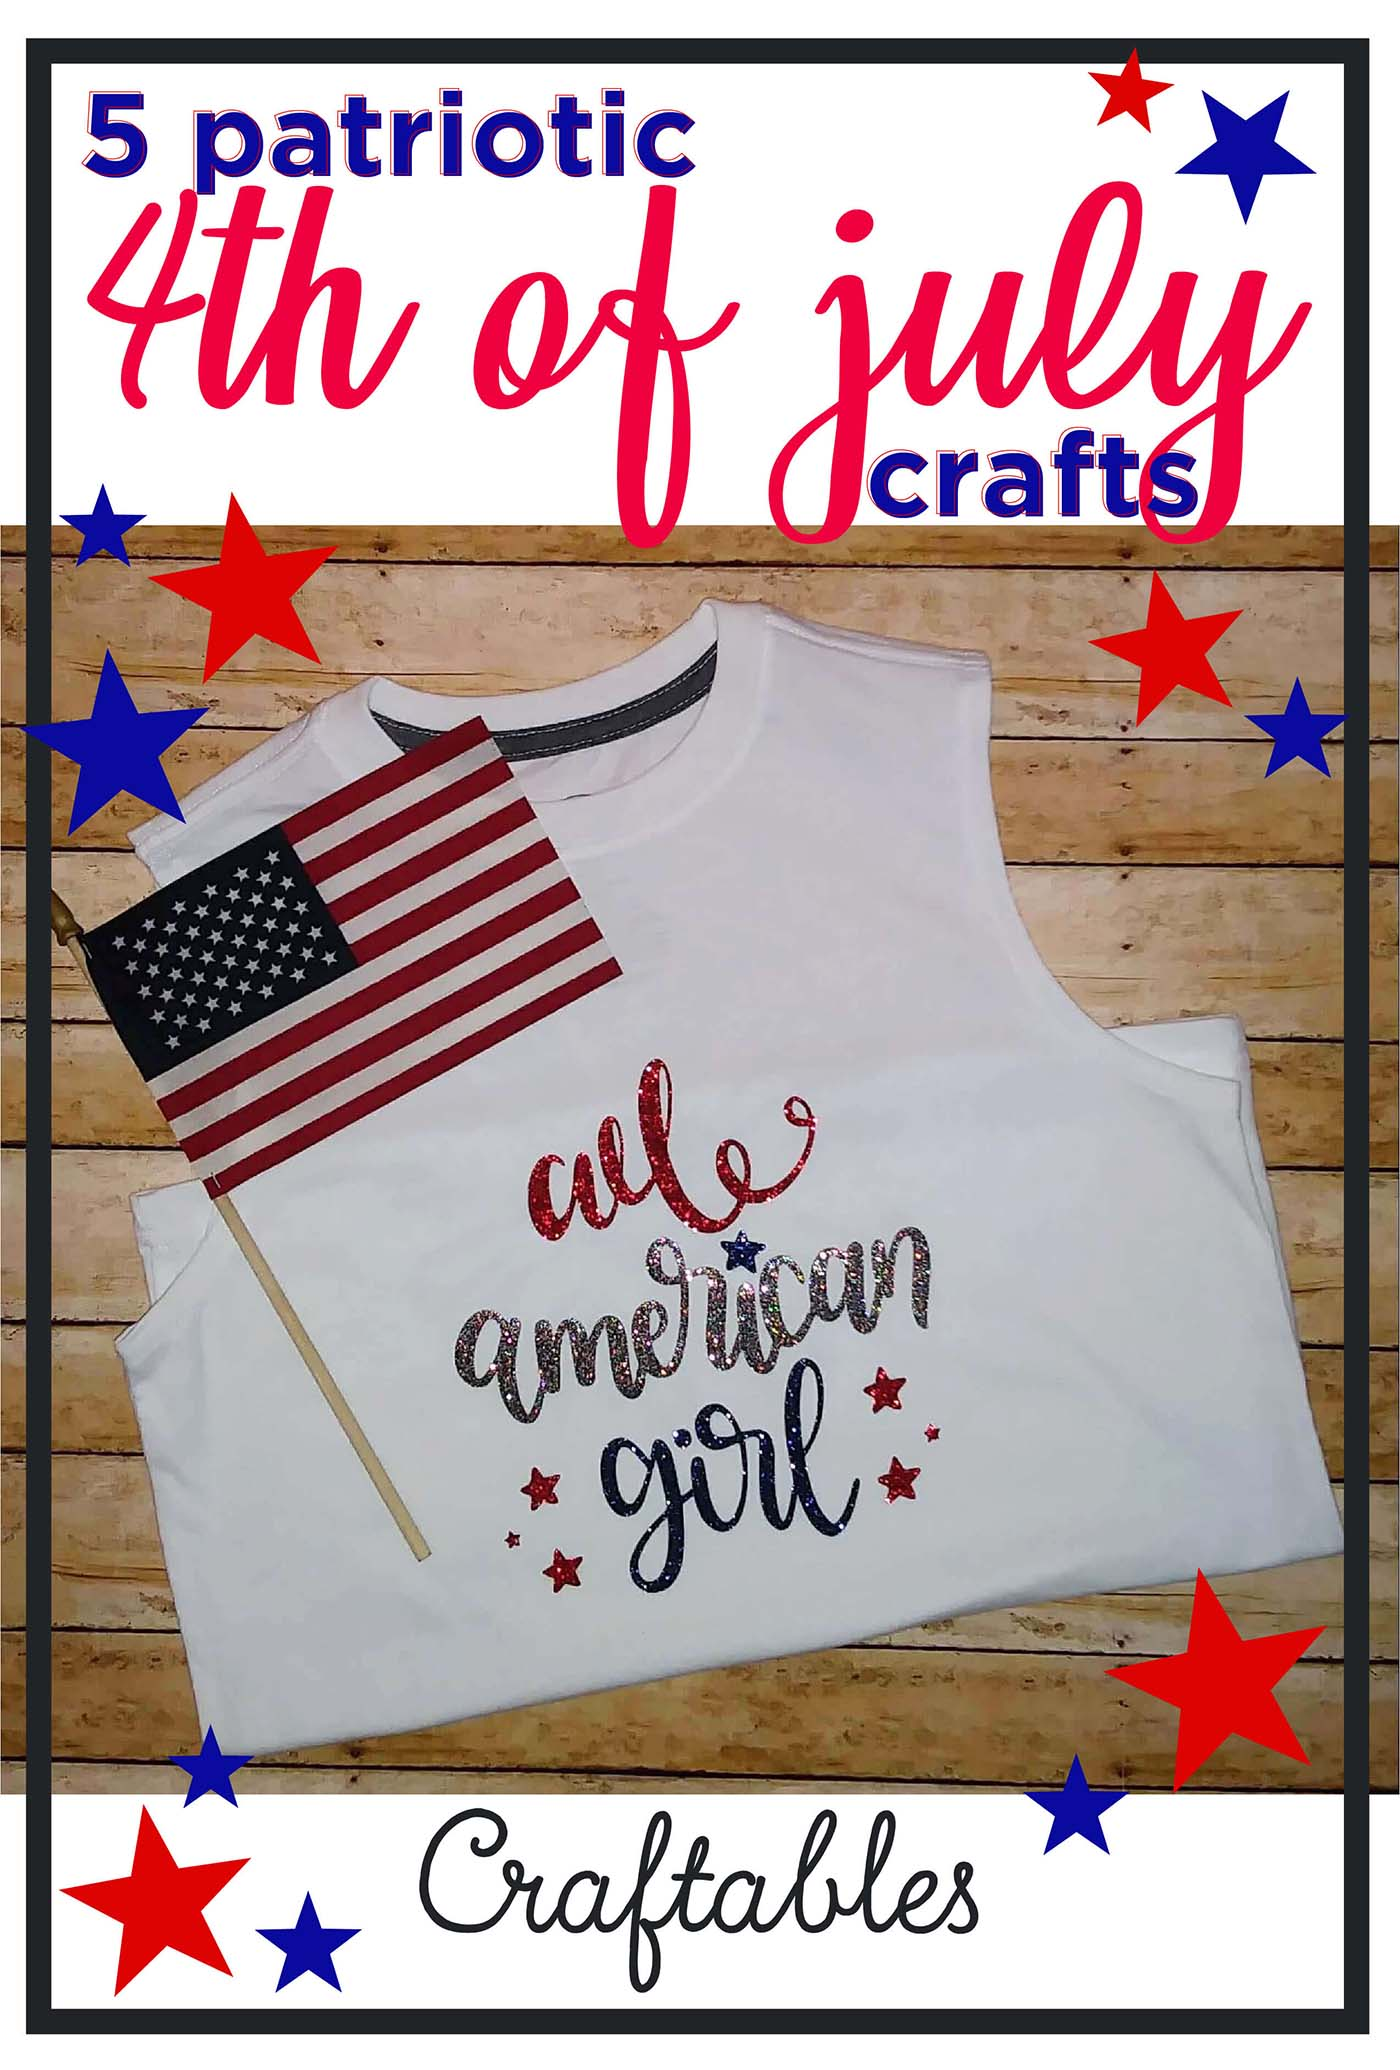 4th-of-july-crafts-sm.jpg